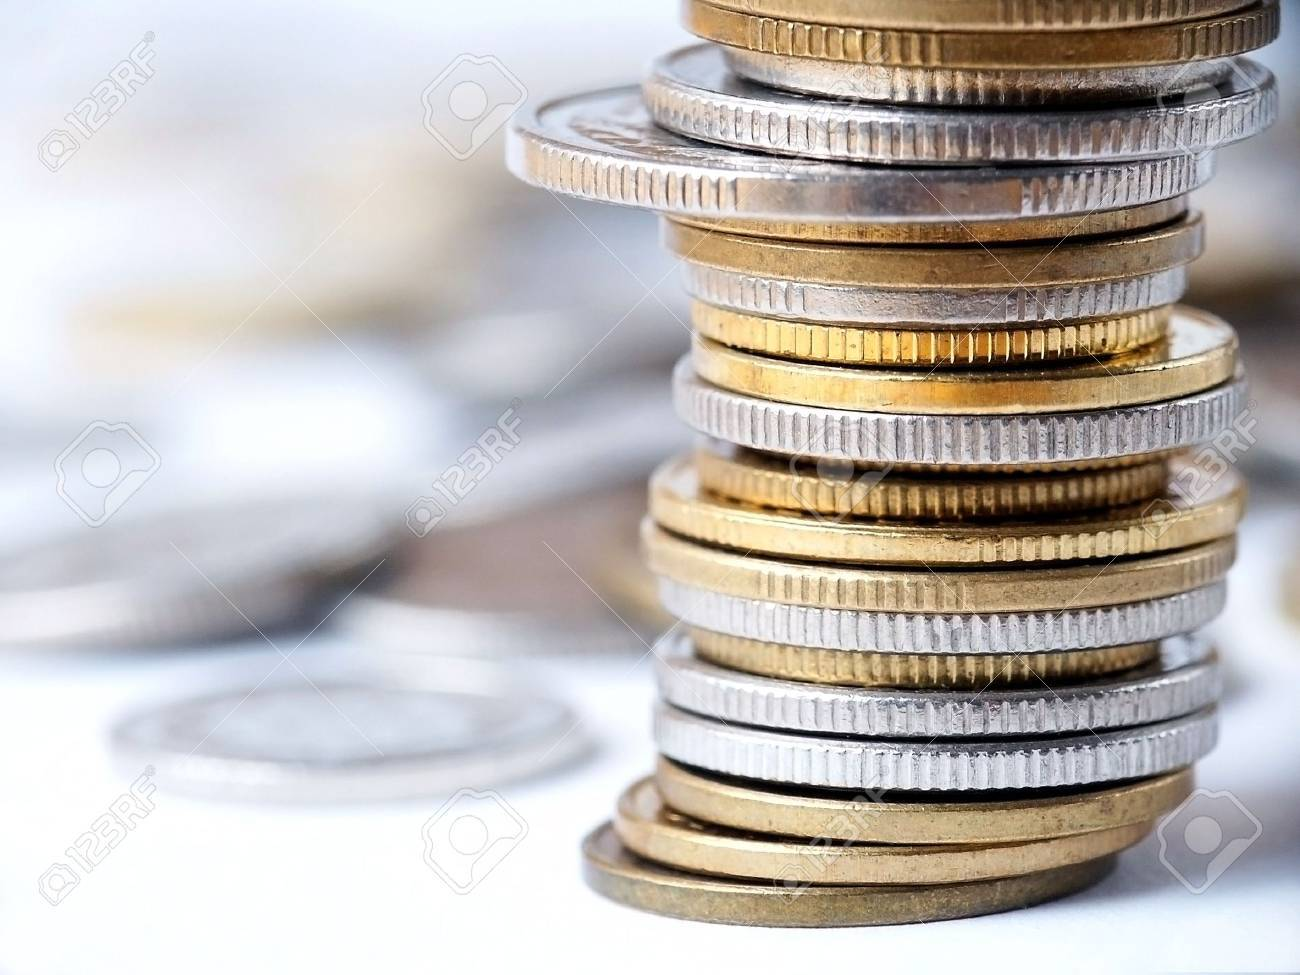 Stacks and Piles of Coins. Stock Photo - 346685